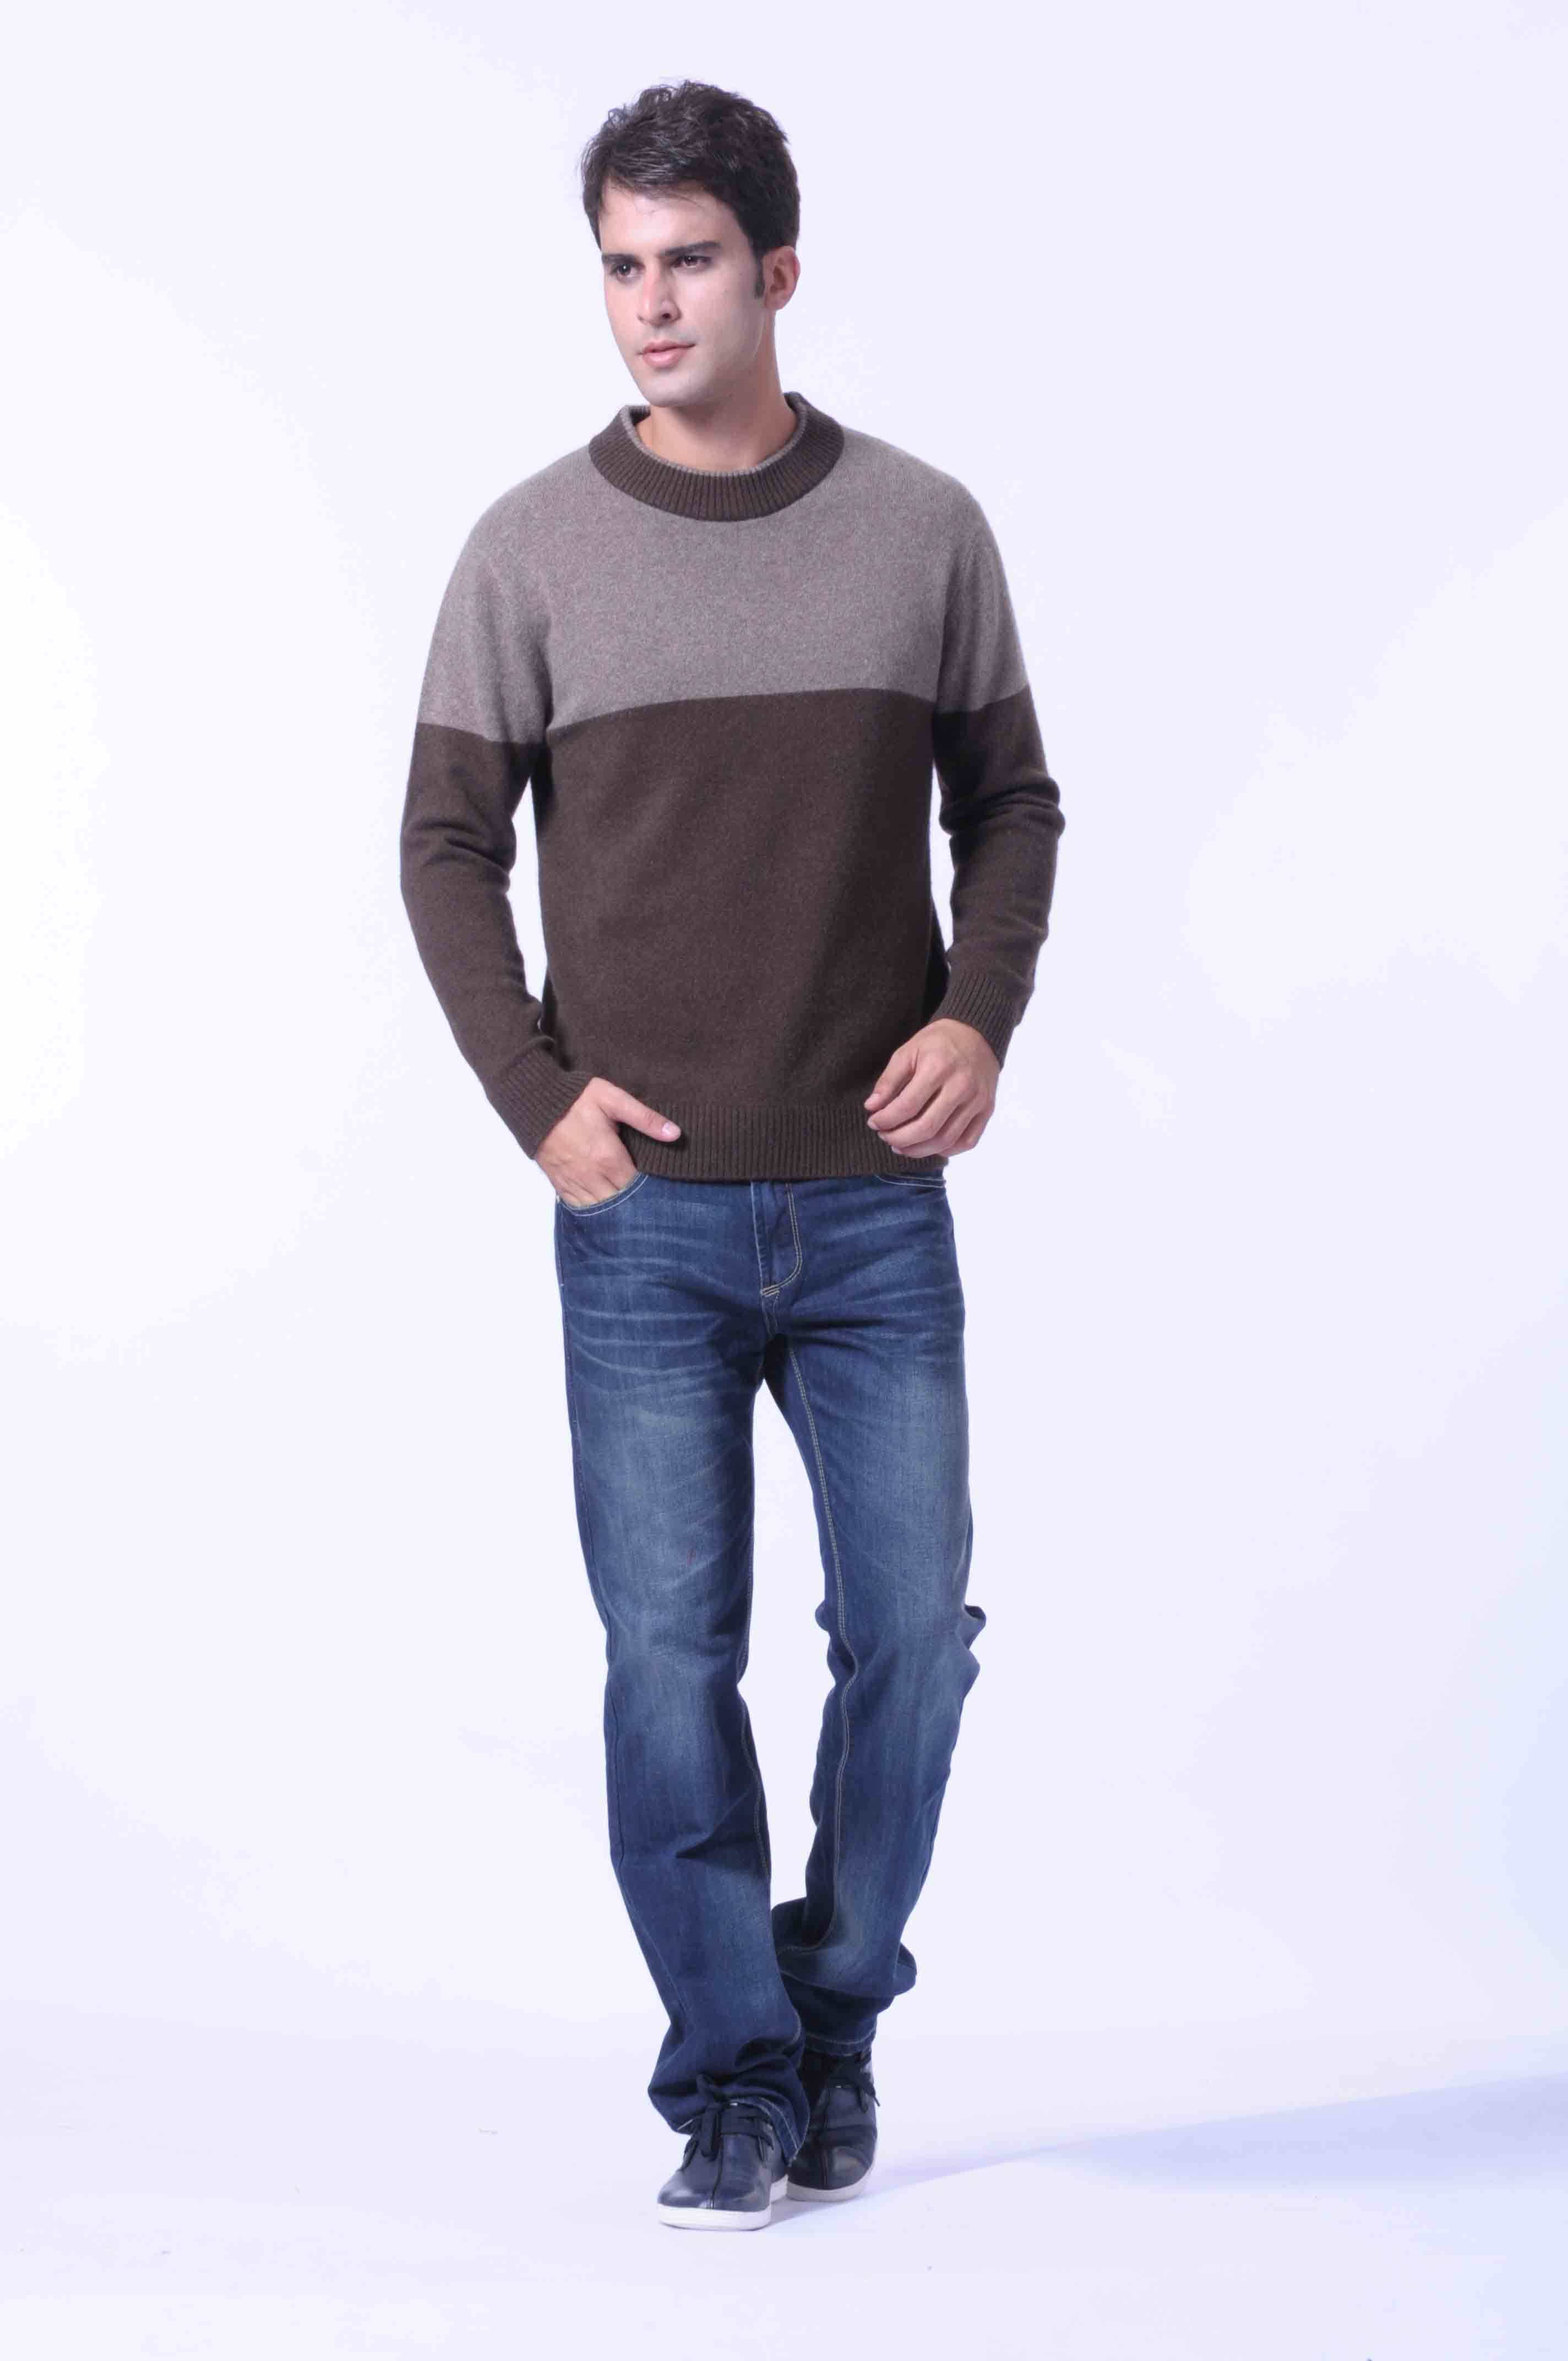 100%Yak Knitted Pullover Striped /Men′s Yak Wool /Wool Sweaters/Garment/Textile/Fabric